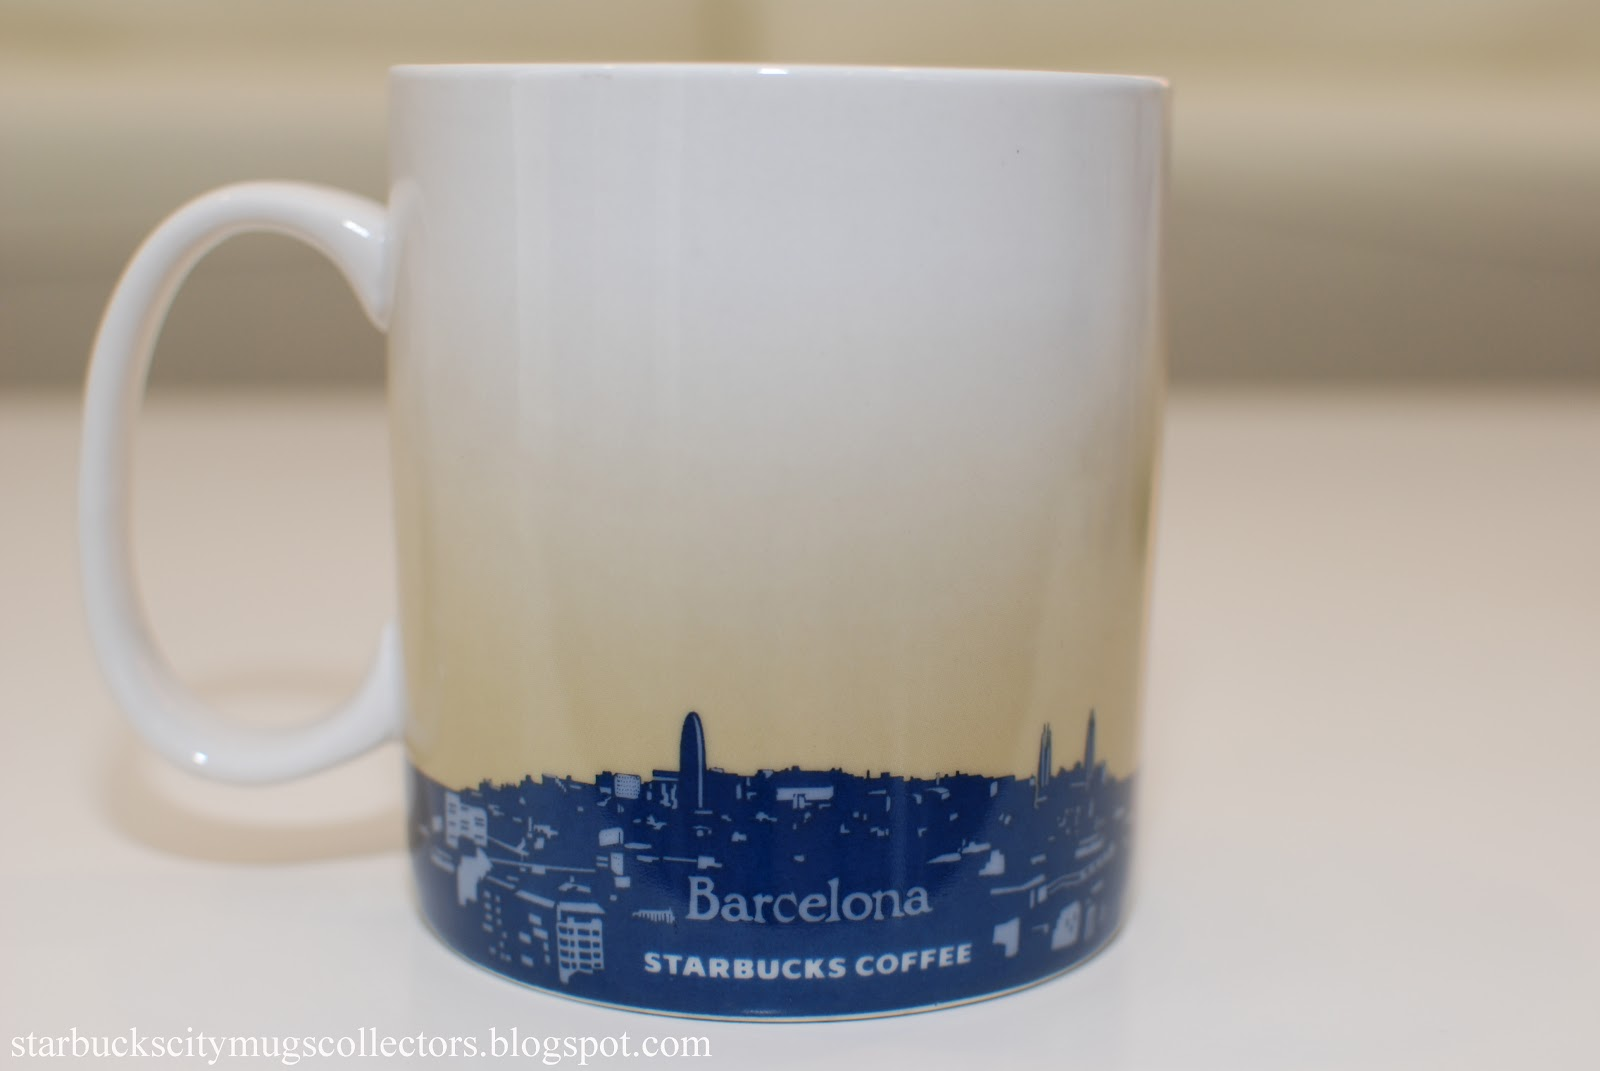 MugsBarcelona City Mug Icon Starbucks MugsBarcelona MugsBarcelona Starbucks Icon Mug Starbucks City City Icon gY6bfy7